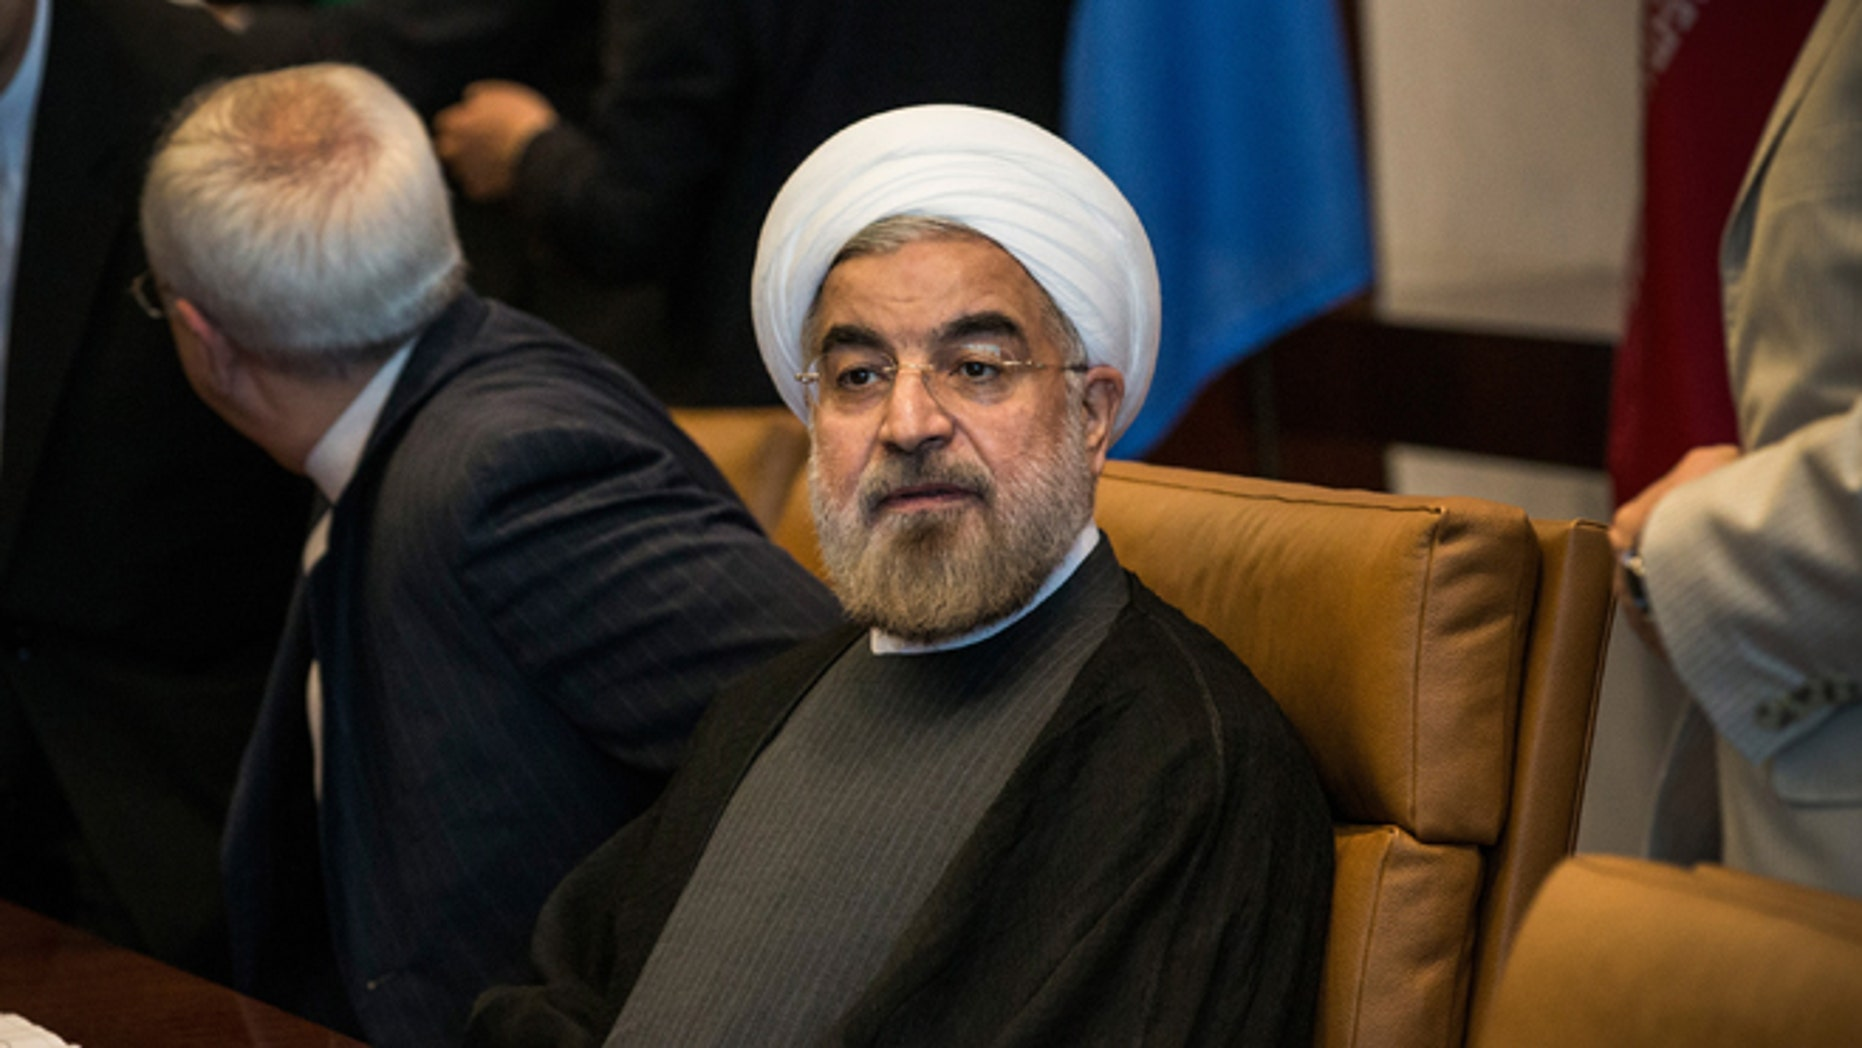 NEW YORK, NY - SEPTEMBER 26:  Iranian President Hassan Rouhani, meets with United Nations Secretary General Ban Ki-moon (not seen) on the sidelines of the United Nations General Assembly on September 26, 2013 in New York City. While their have been talks of diplomatic relations between Iran and the United states restarting, Rouhani turned down an opportunity to meet with U.S. President Barack Obama earlier in the week.  (Photo by Andrew Burton/Getty Images)